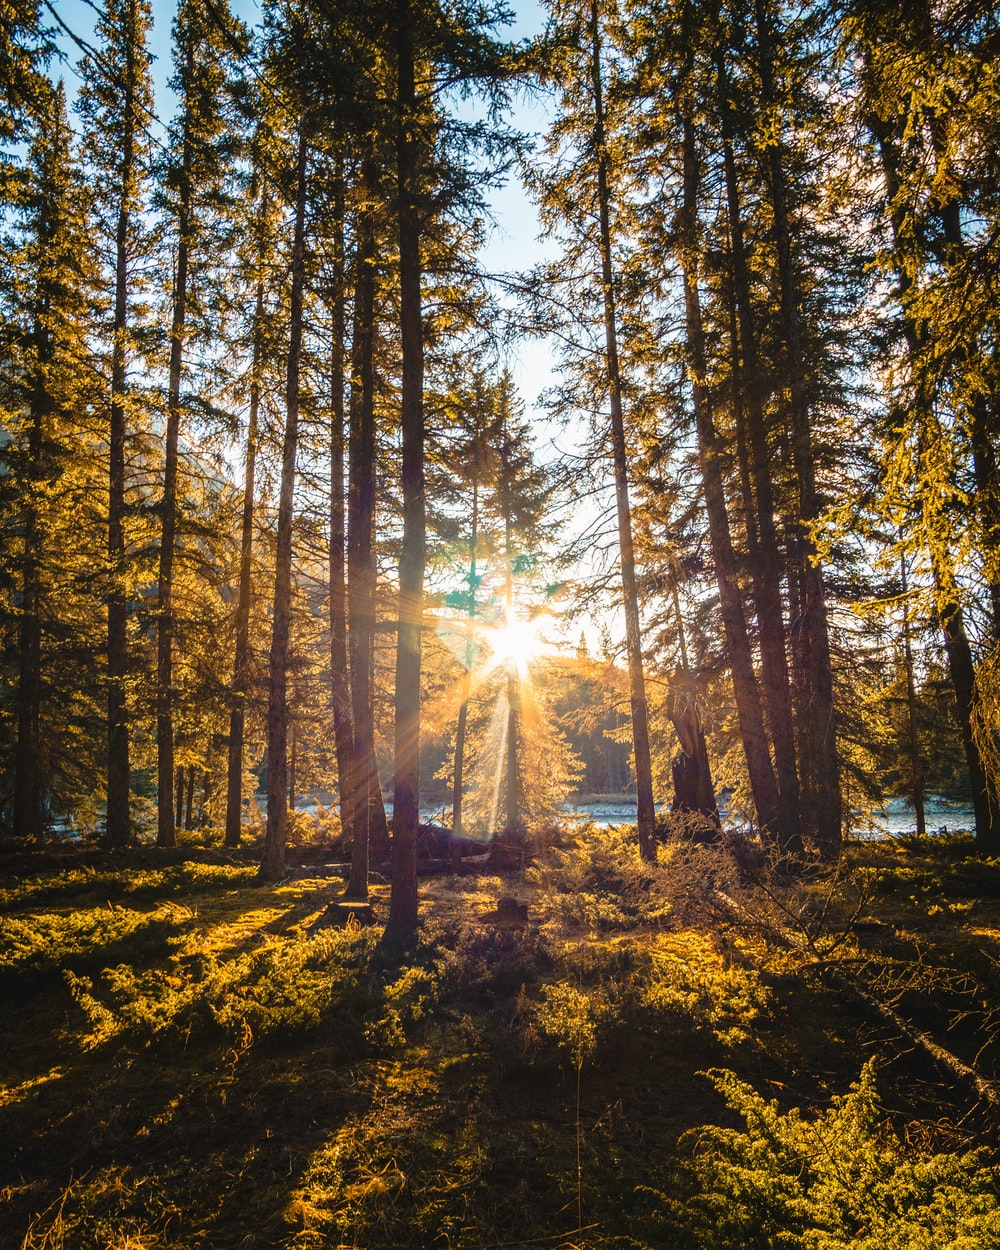 sun ray piercing through pine forest during day time